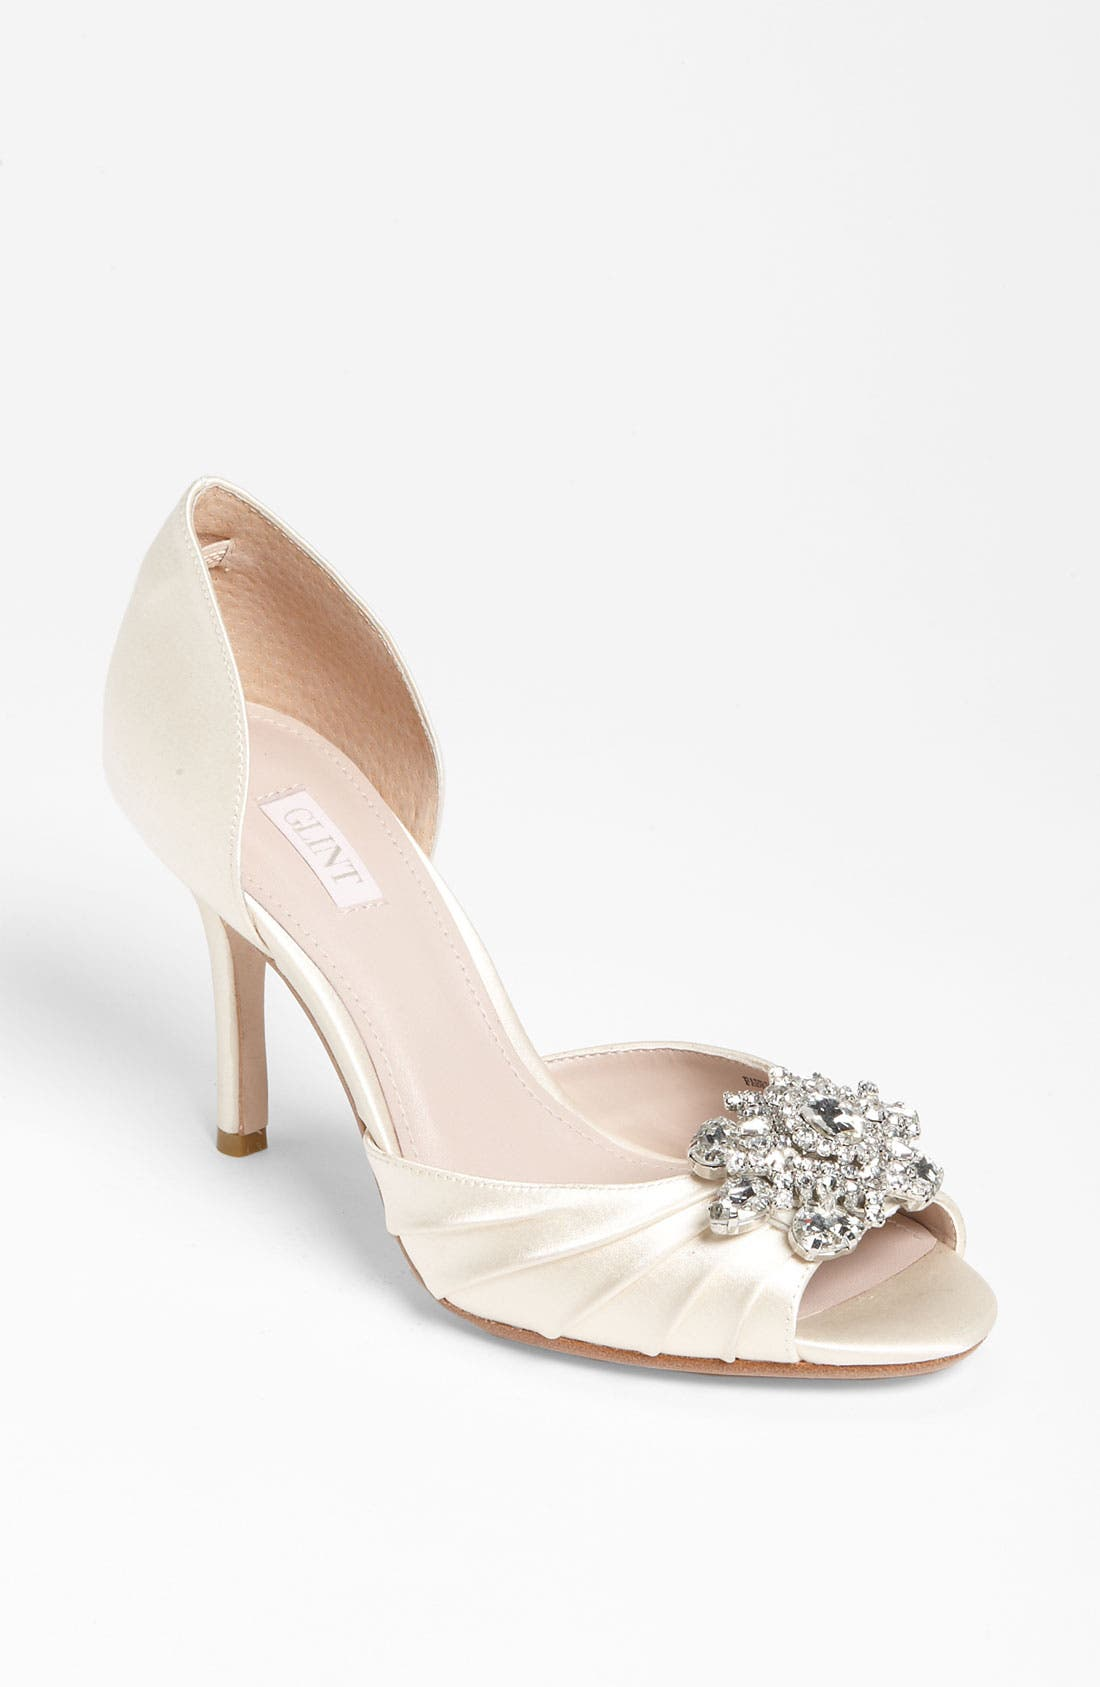 Main Image - GLINT RADIANCE ORNAMENT PEEP TOE PUMP